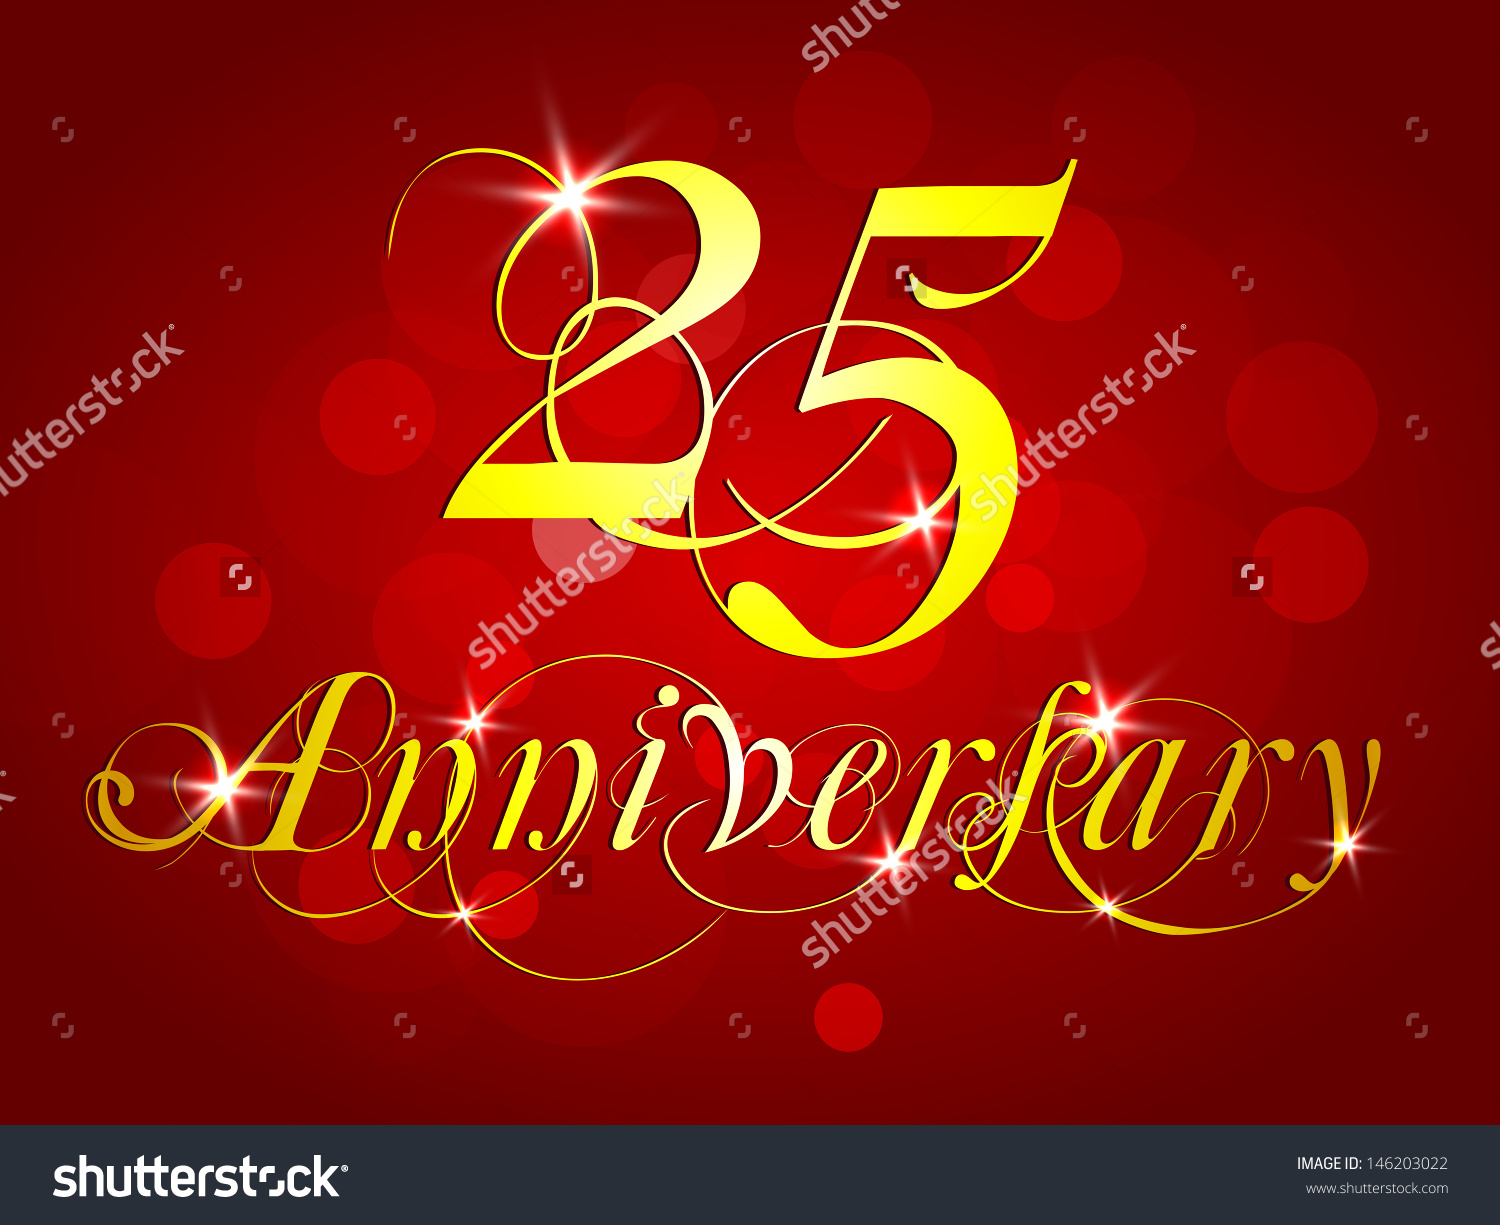 Happy Anniversary Background Stock Vector 146203022 - Shutterstock